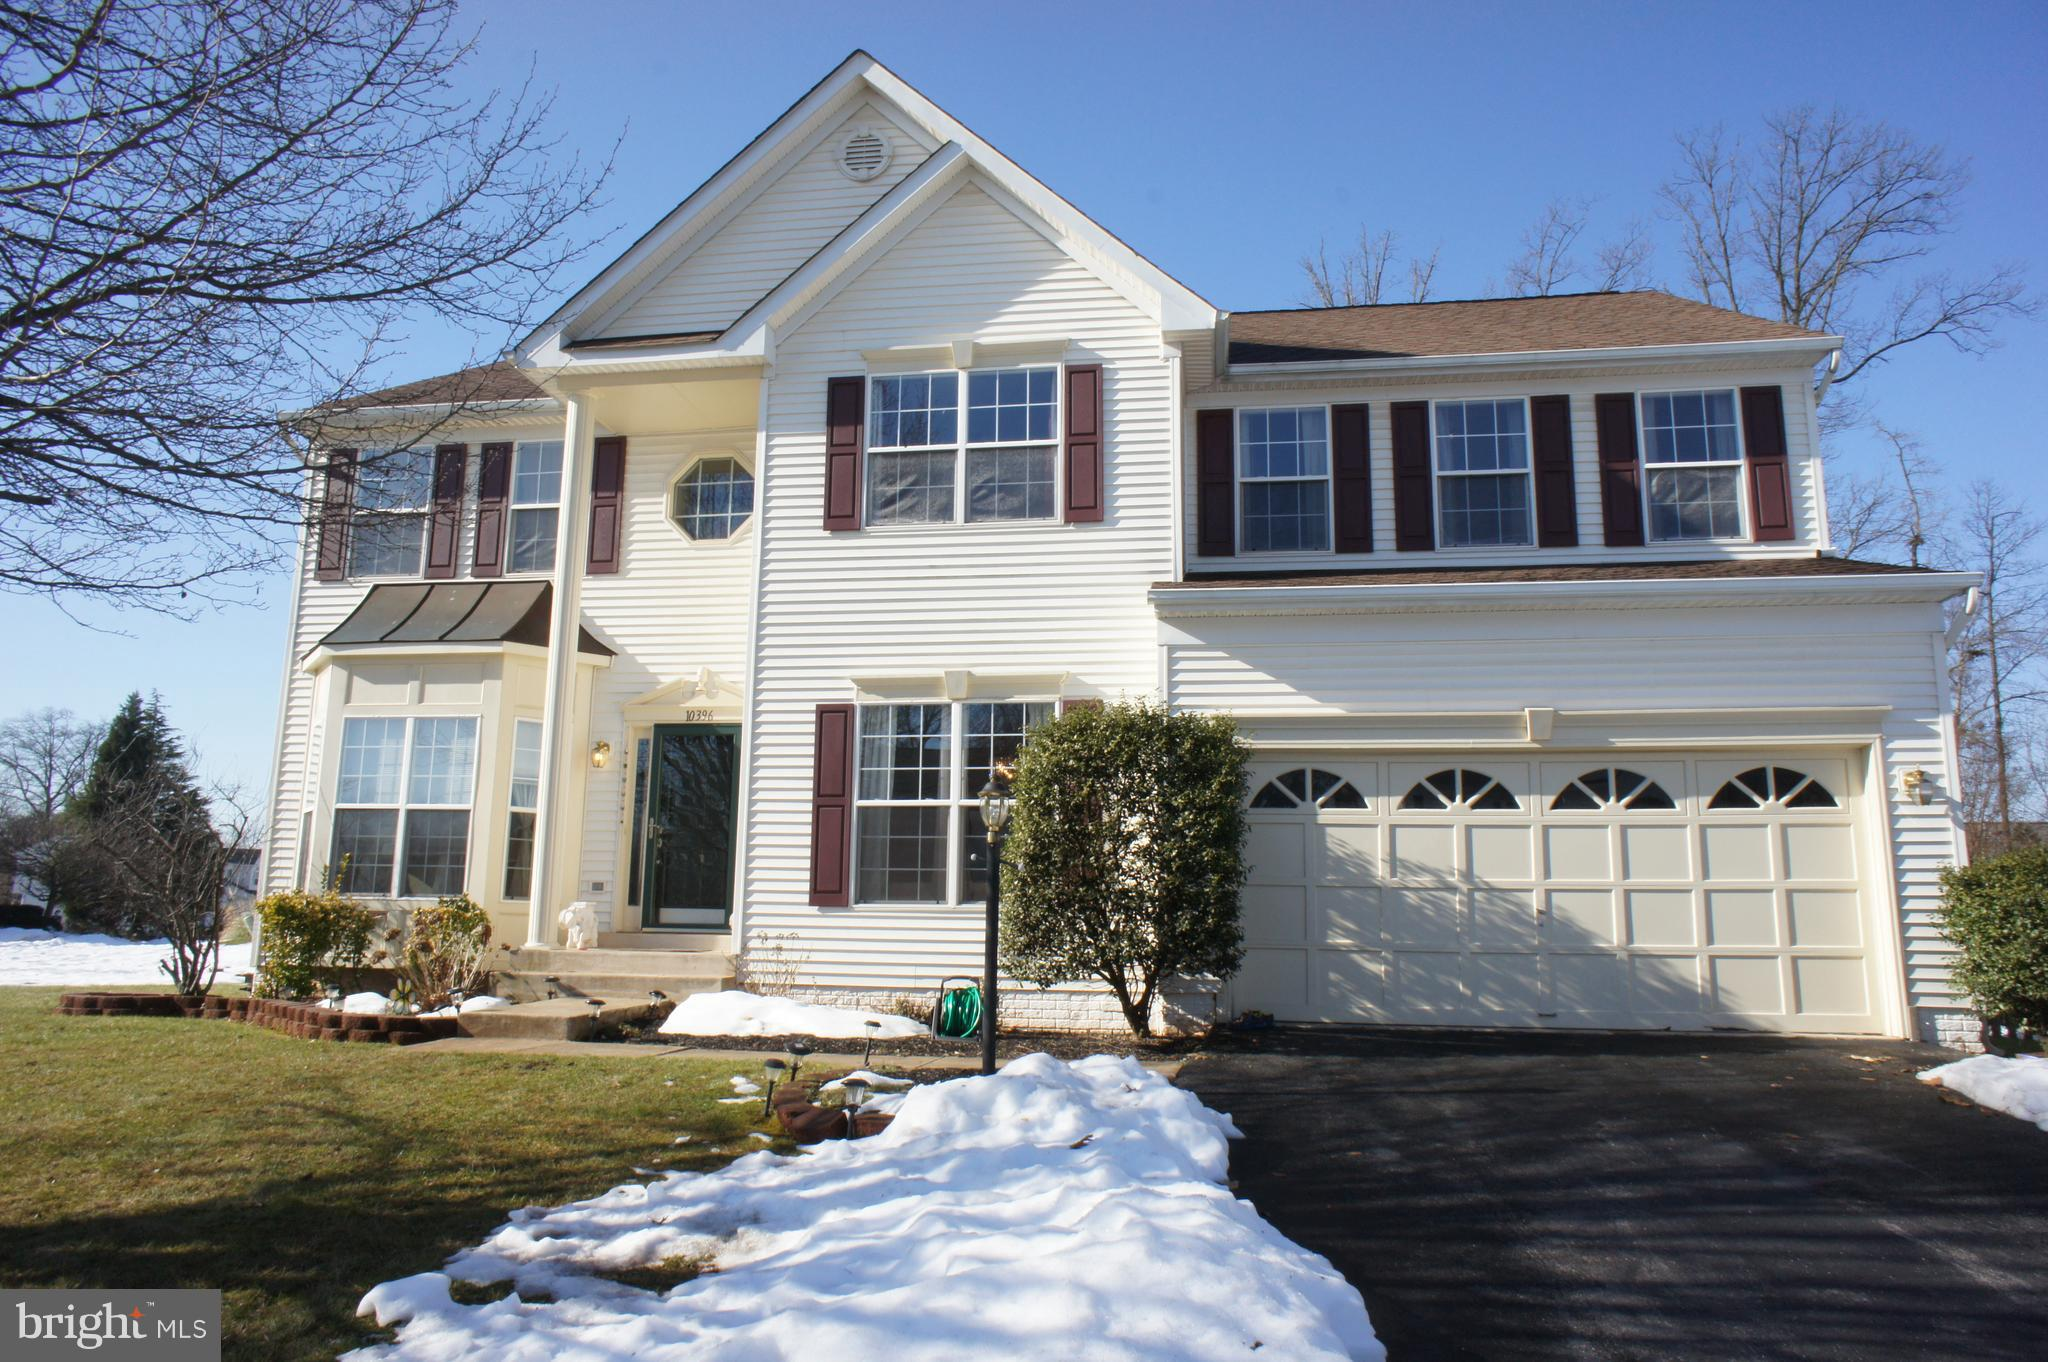 10396 LIME TREE COURT, MANASSAS, VA 20110